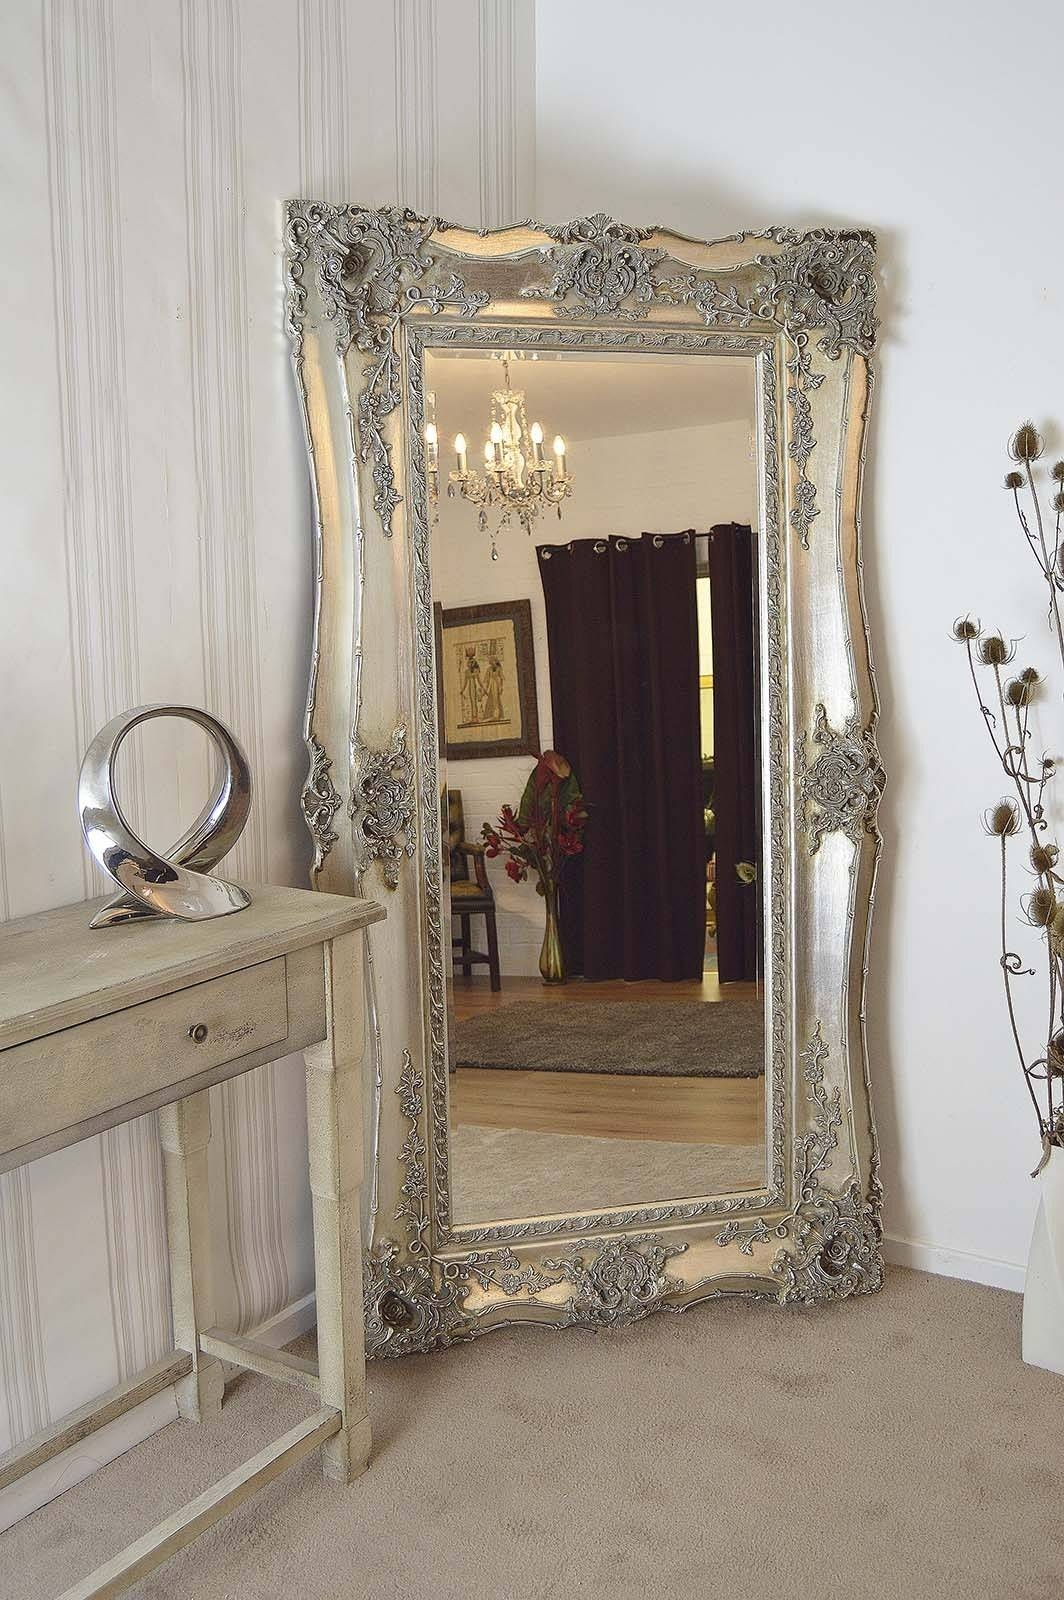 Classic Impression On Antique Wall Mirrors | Vwho Pertaining To Silver Antique Mirrors (View 10 of 25)